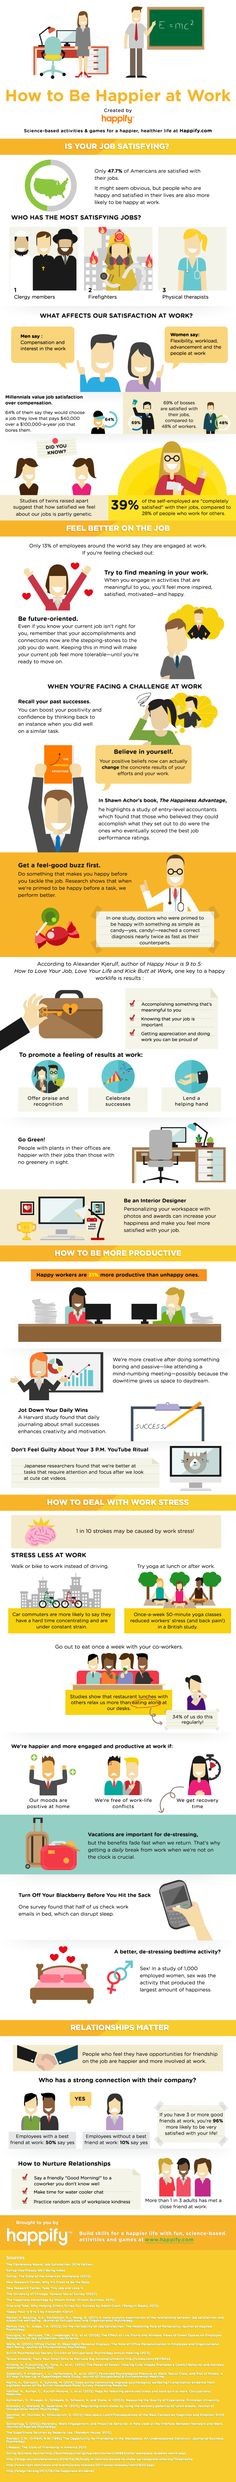 How to Be Happier at Work #infographic #HowTo #Happy #Office #Career #Job